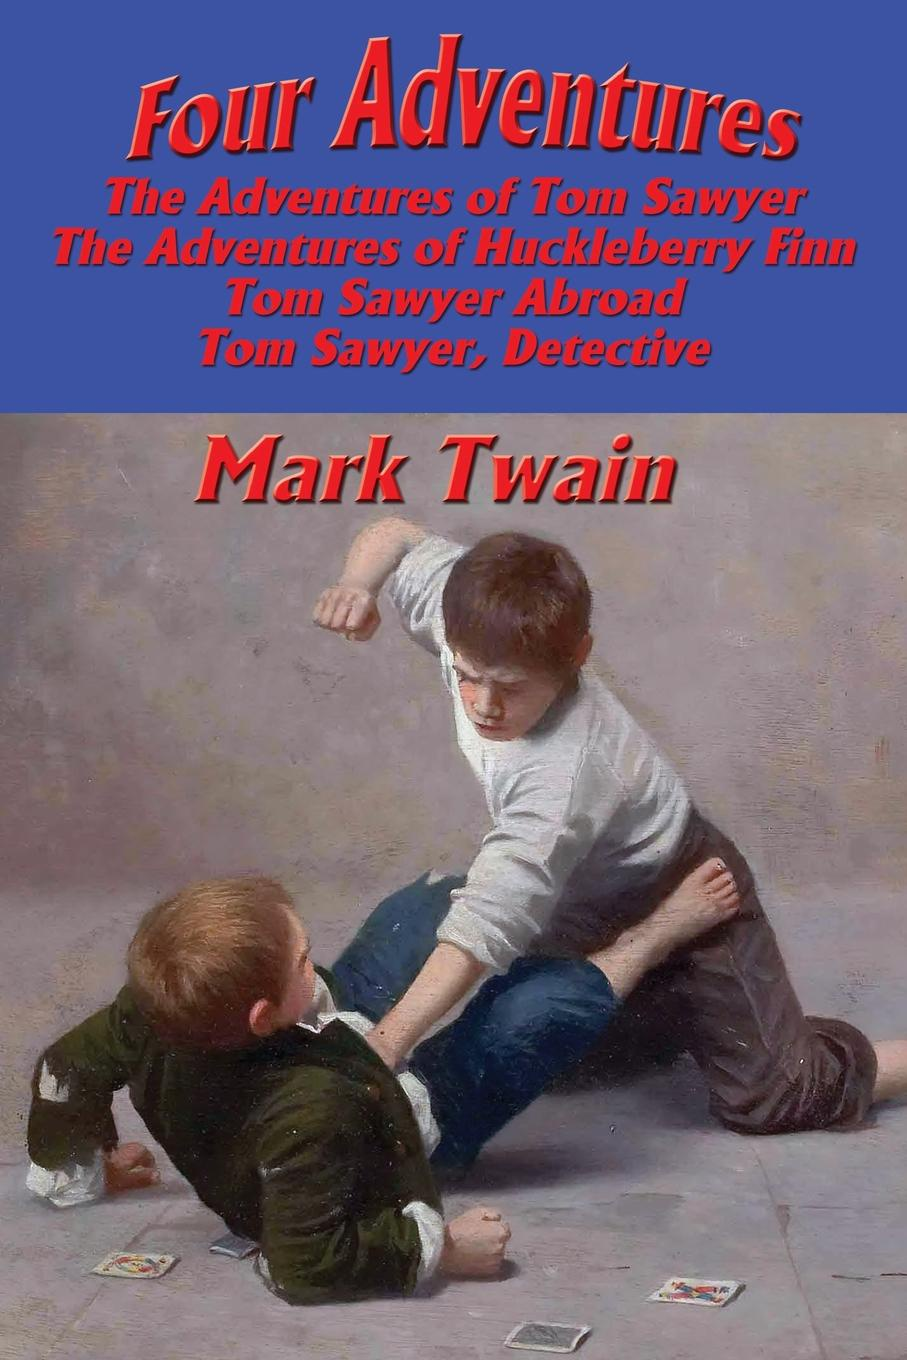 Mark Twain, Samuel Clemens Four Adventures. simpler time. Collected here in one omnibus edition are all four of the books in this series: The Adventures of Tom Sawyer, The Adventures of Huckleberry Finn, Tom Sawyer Abroad, and Tom Sawyer, Detective fantastic four by matt fraction omnibus